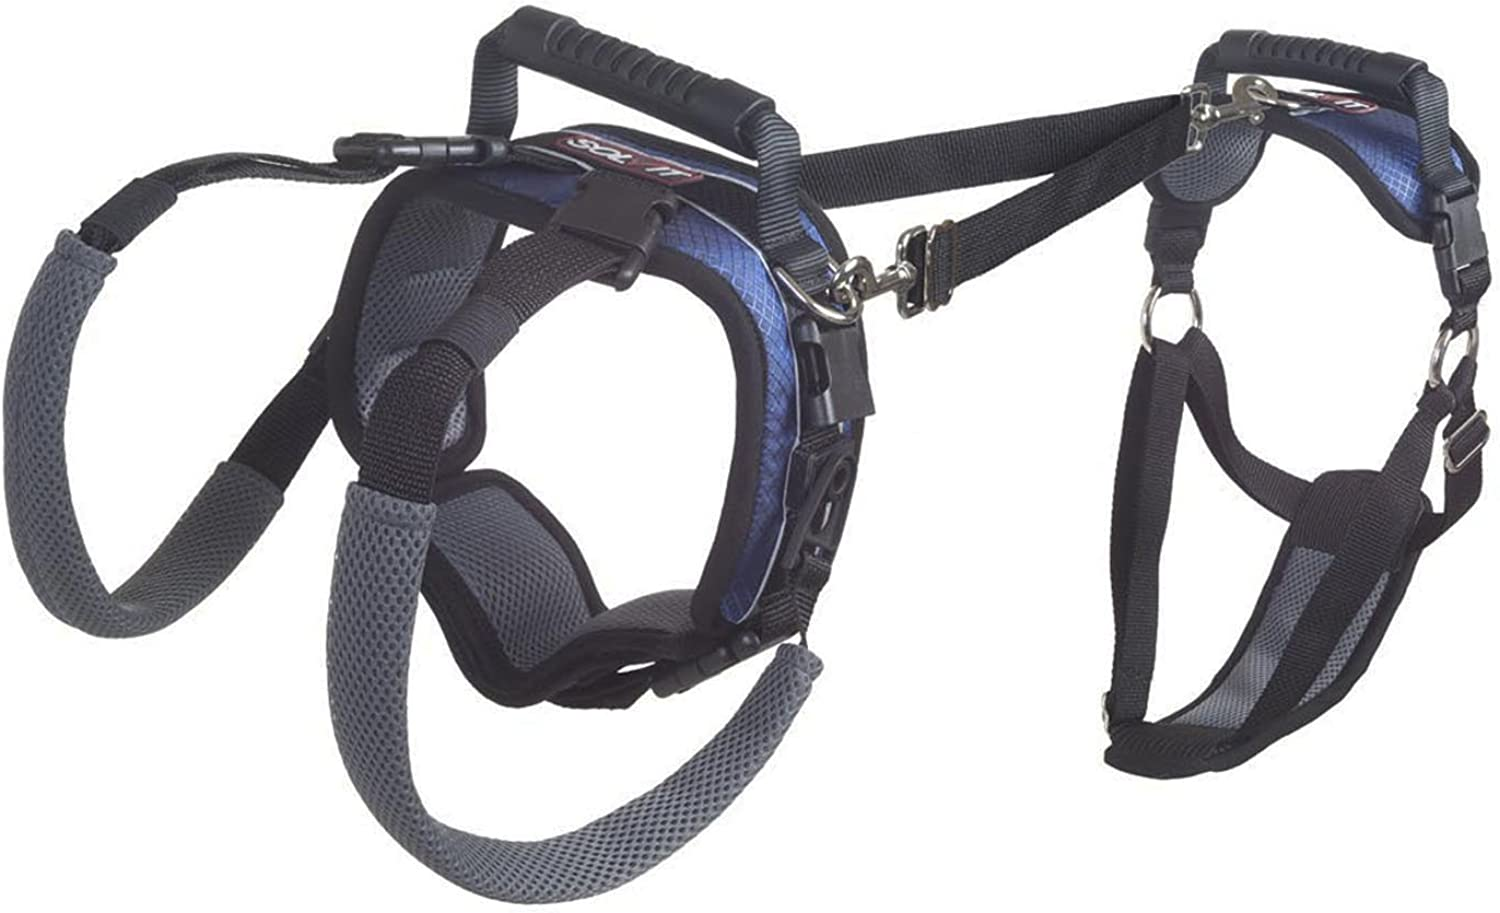 Dog Lifting Aid  Mobility Harness  Large Size